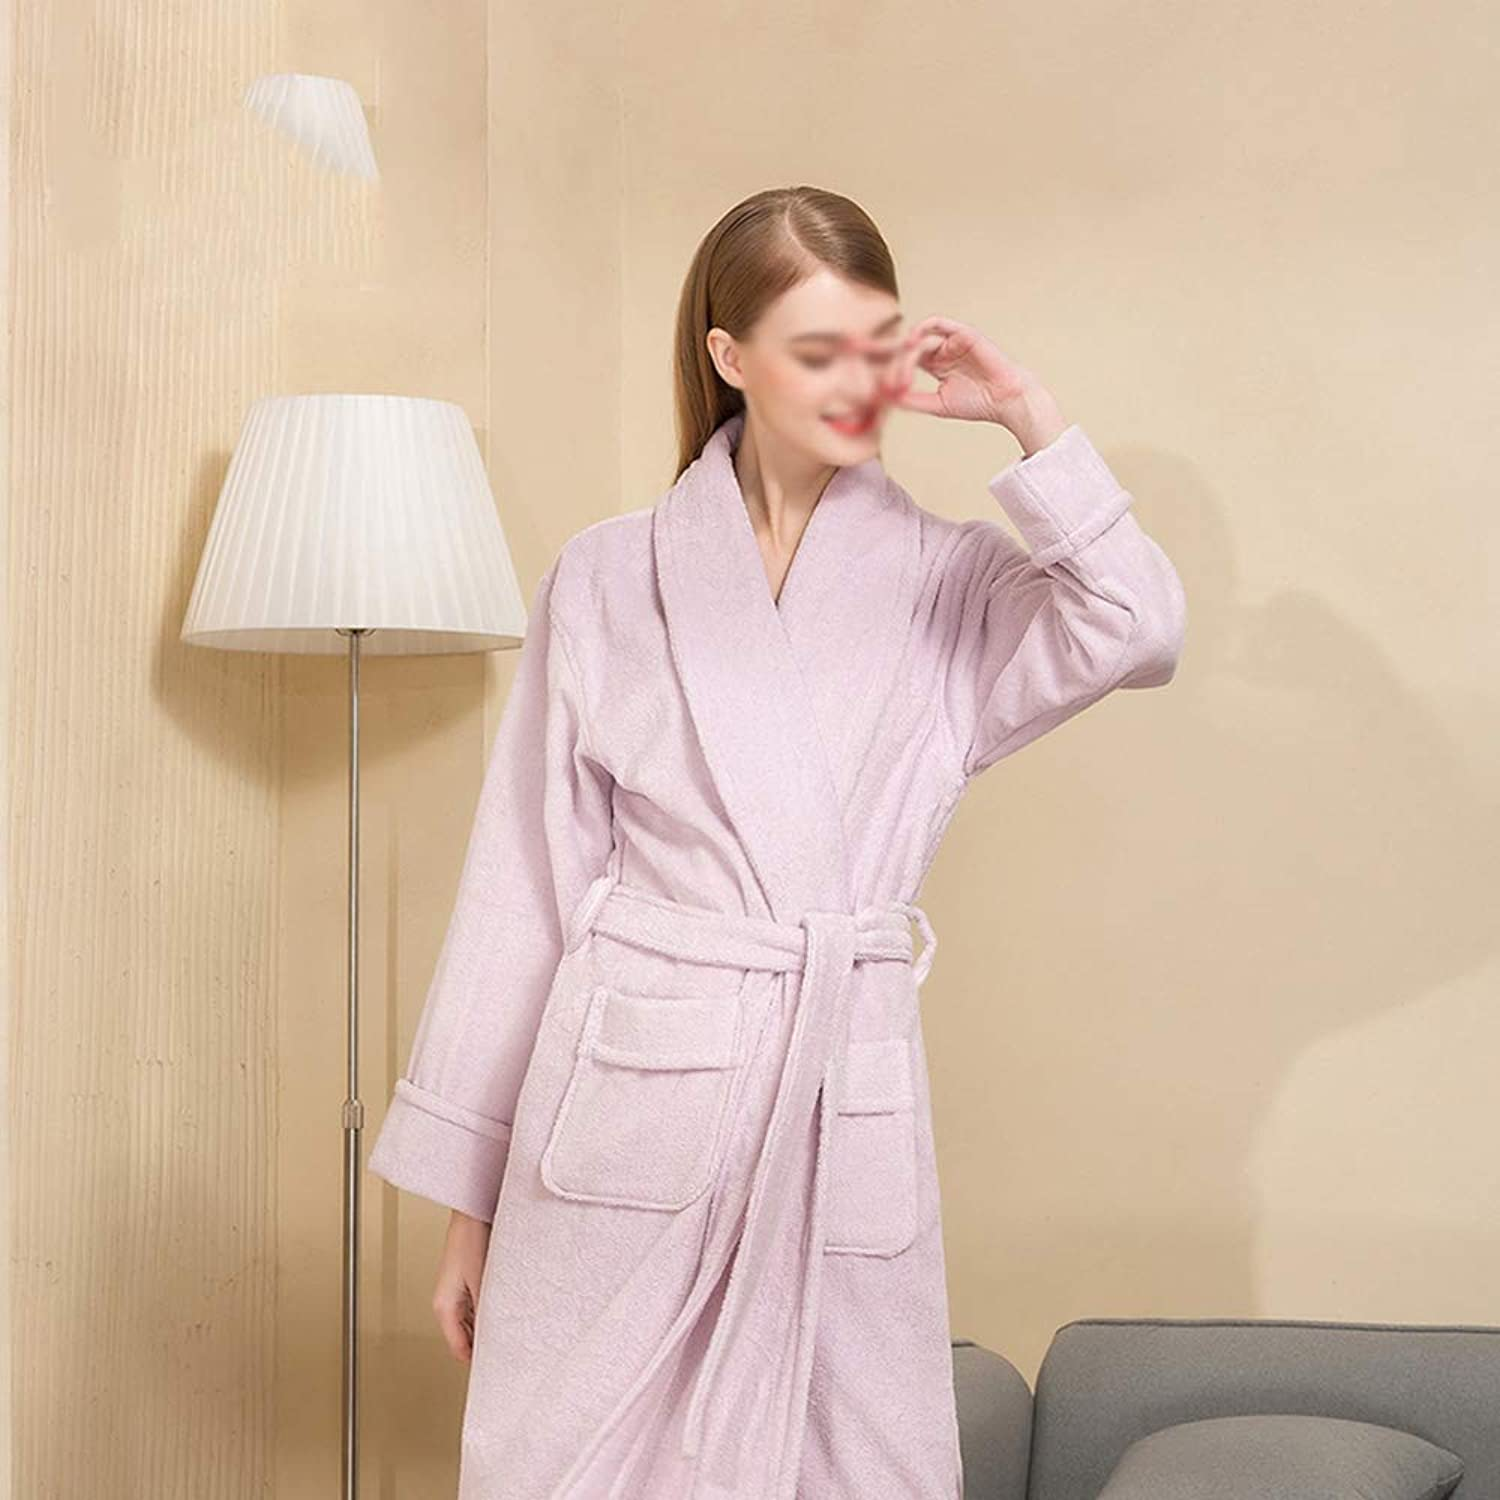 Bathrobes, Bathrobe for Women,Extra Long Cotton Toweling Robes Adult Hotel Dressing Gown